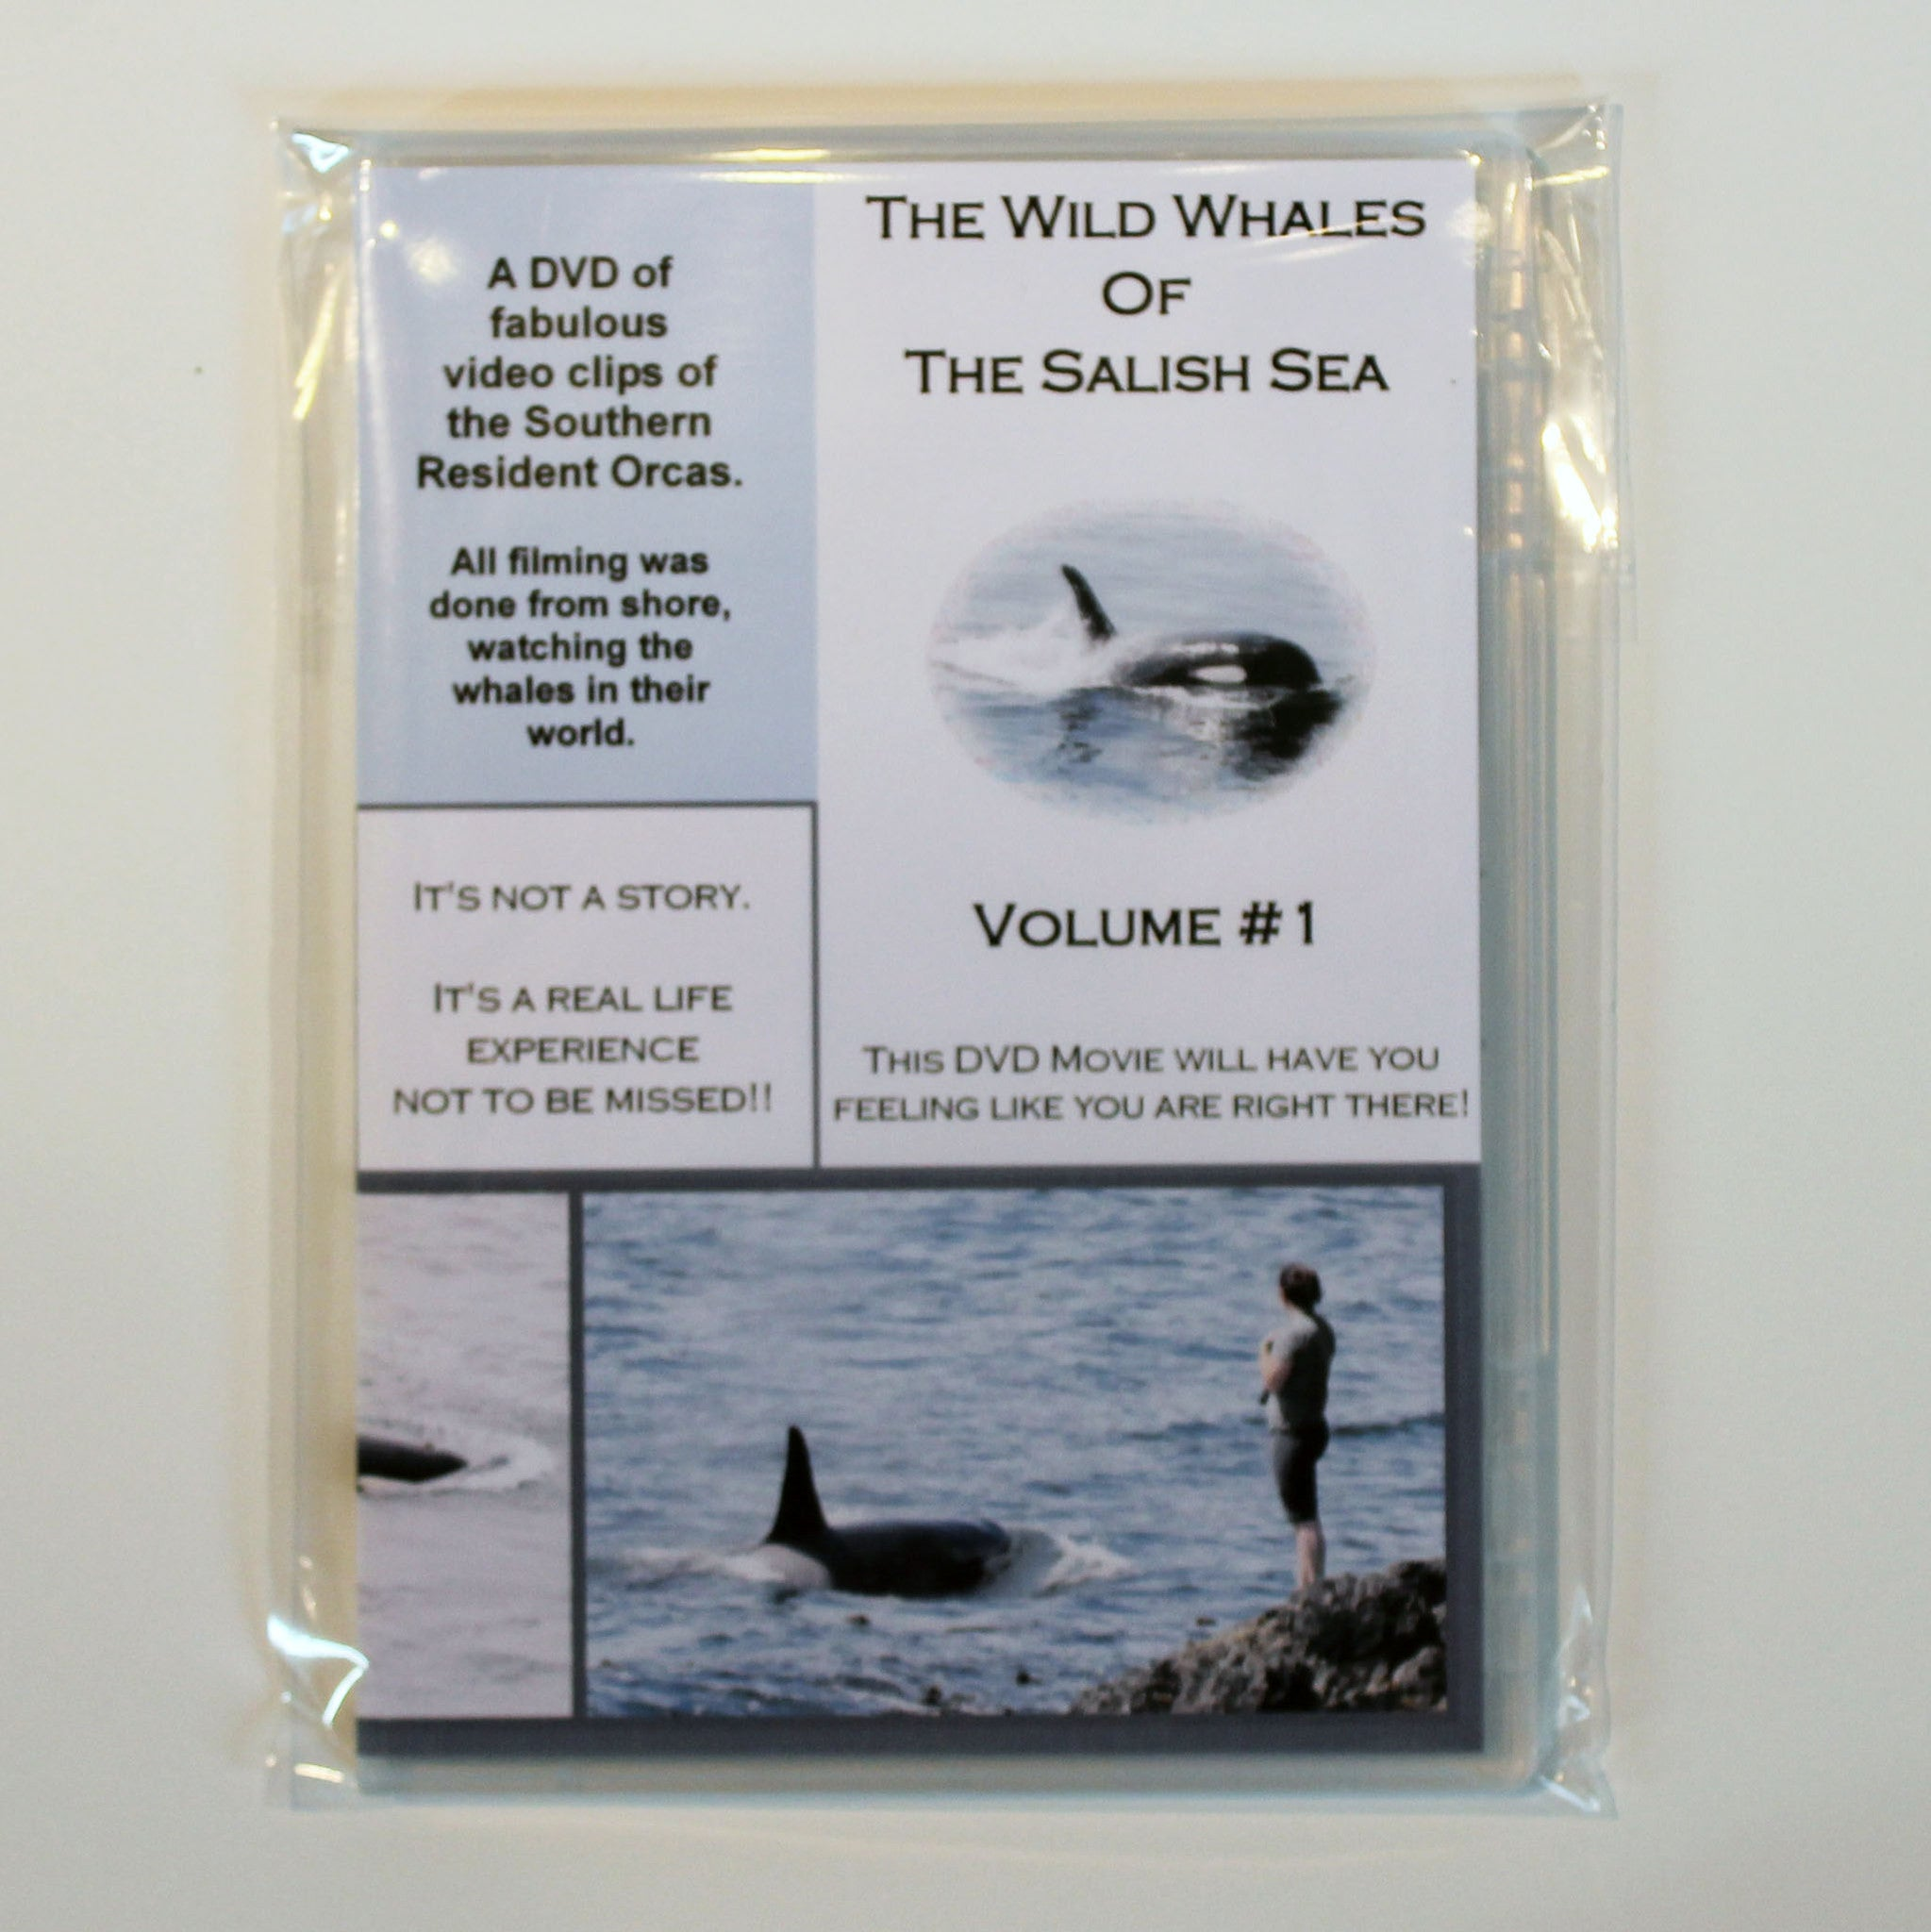 The Wild Whales Of The Salish Sea Volume 1